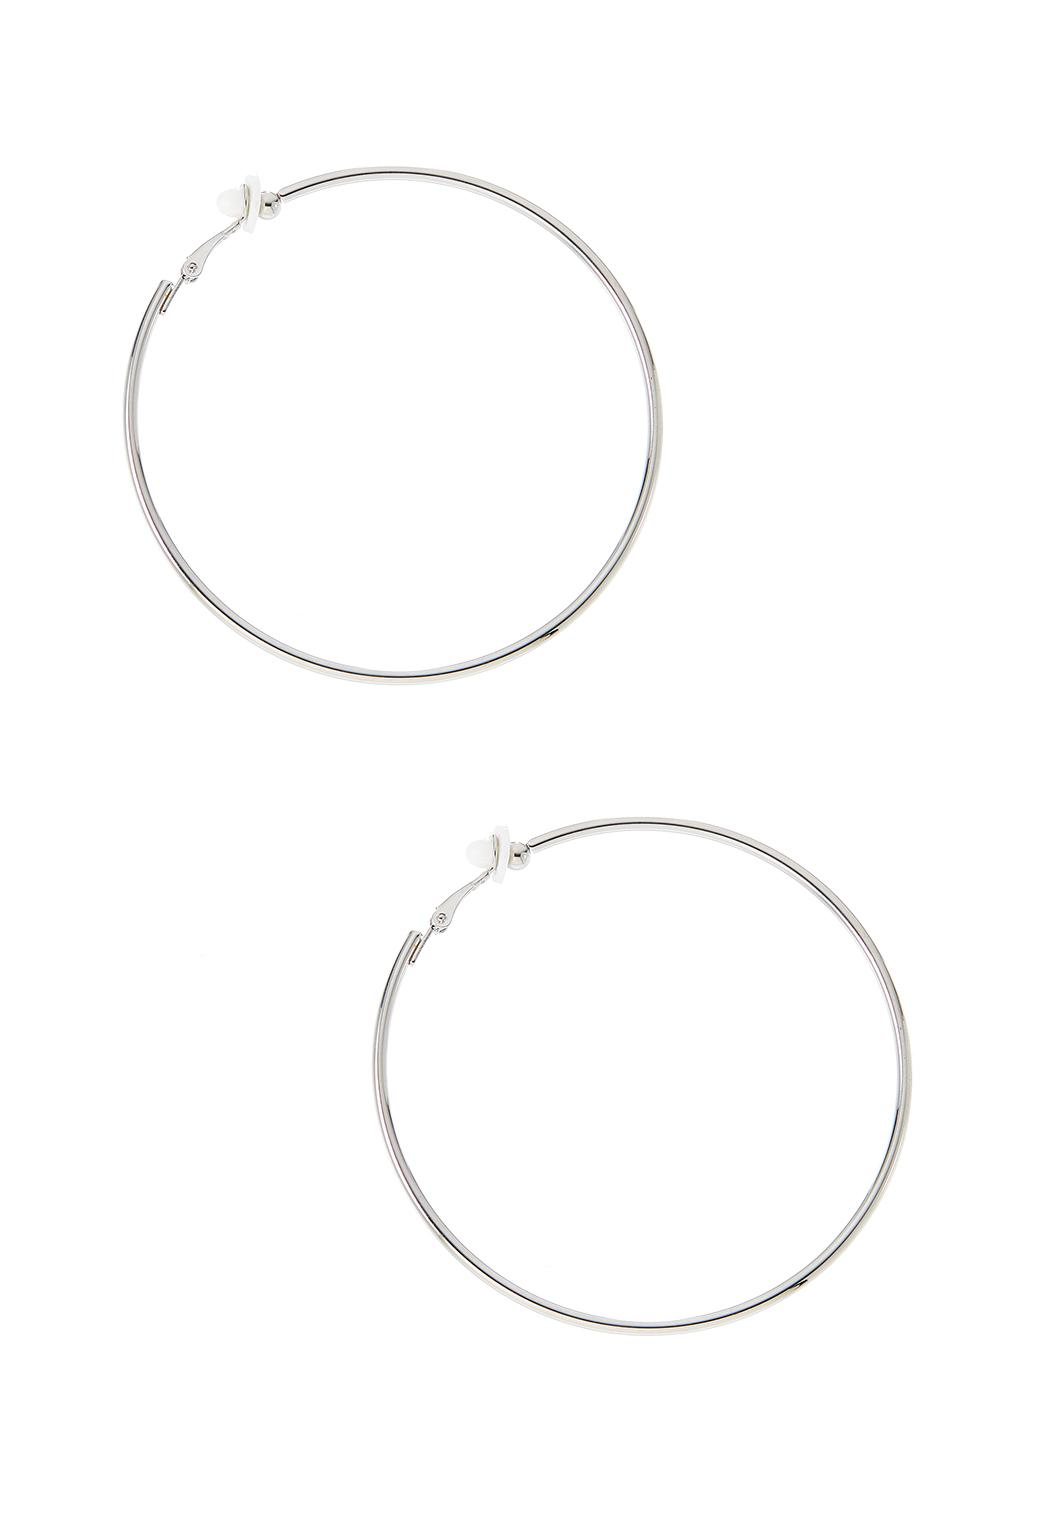 Thin Silver Clip-On Hoop Earrings